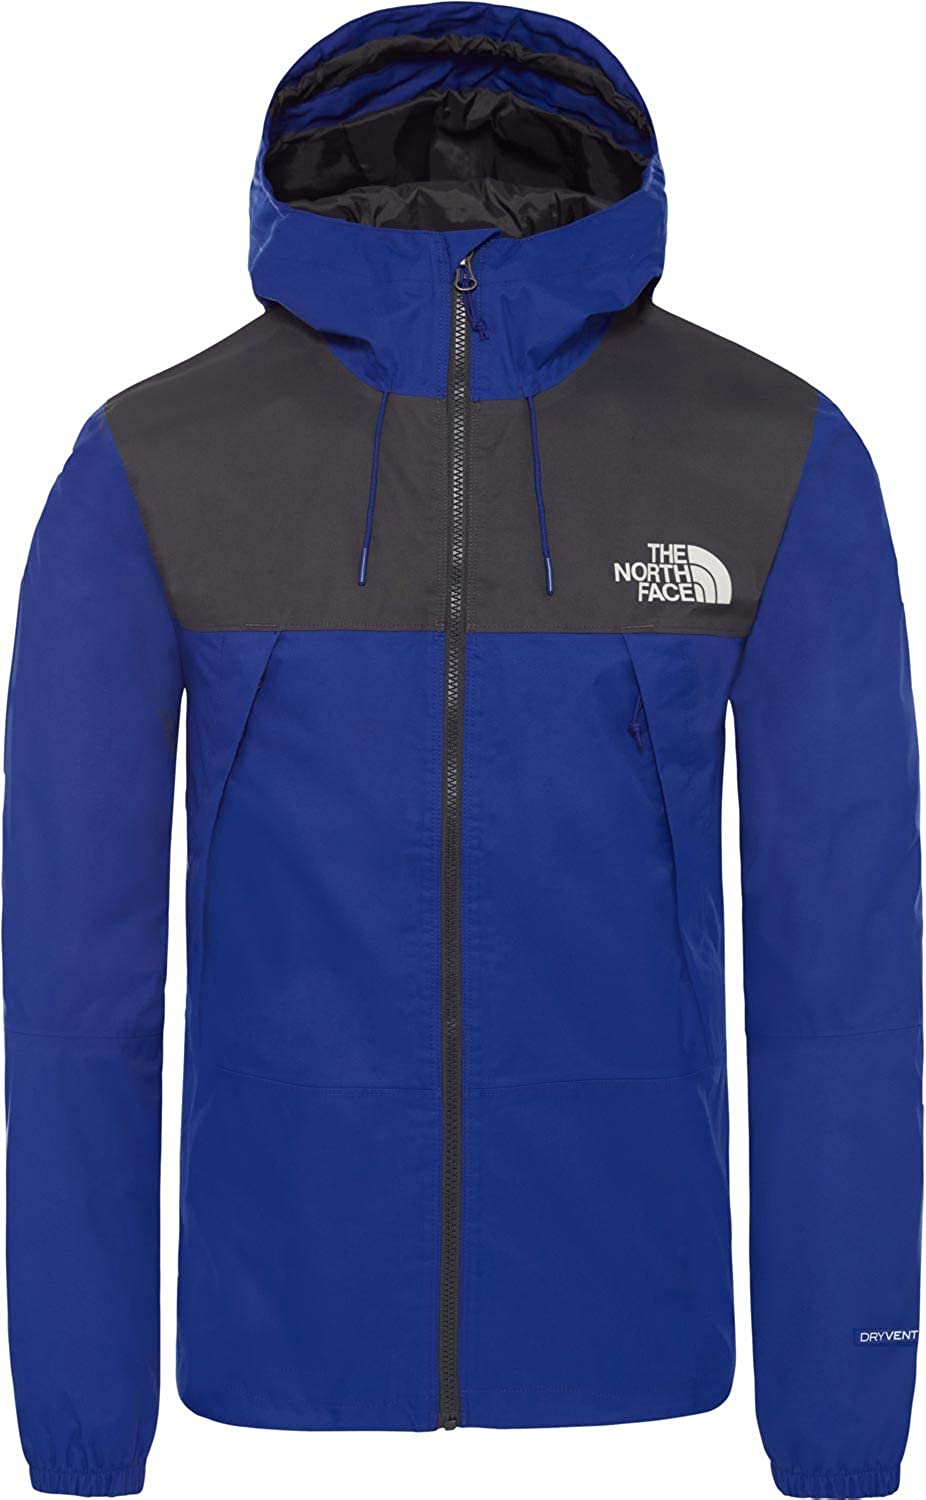 Lapis bluee L THE NORTH FACE Jacket